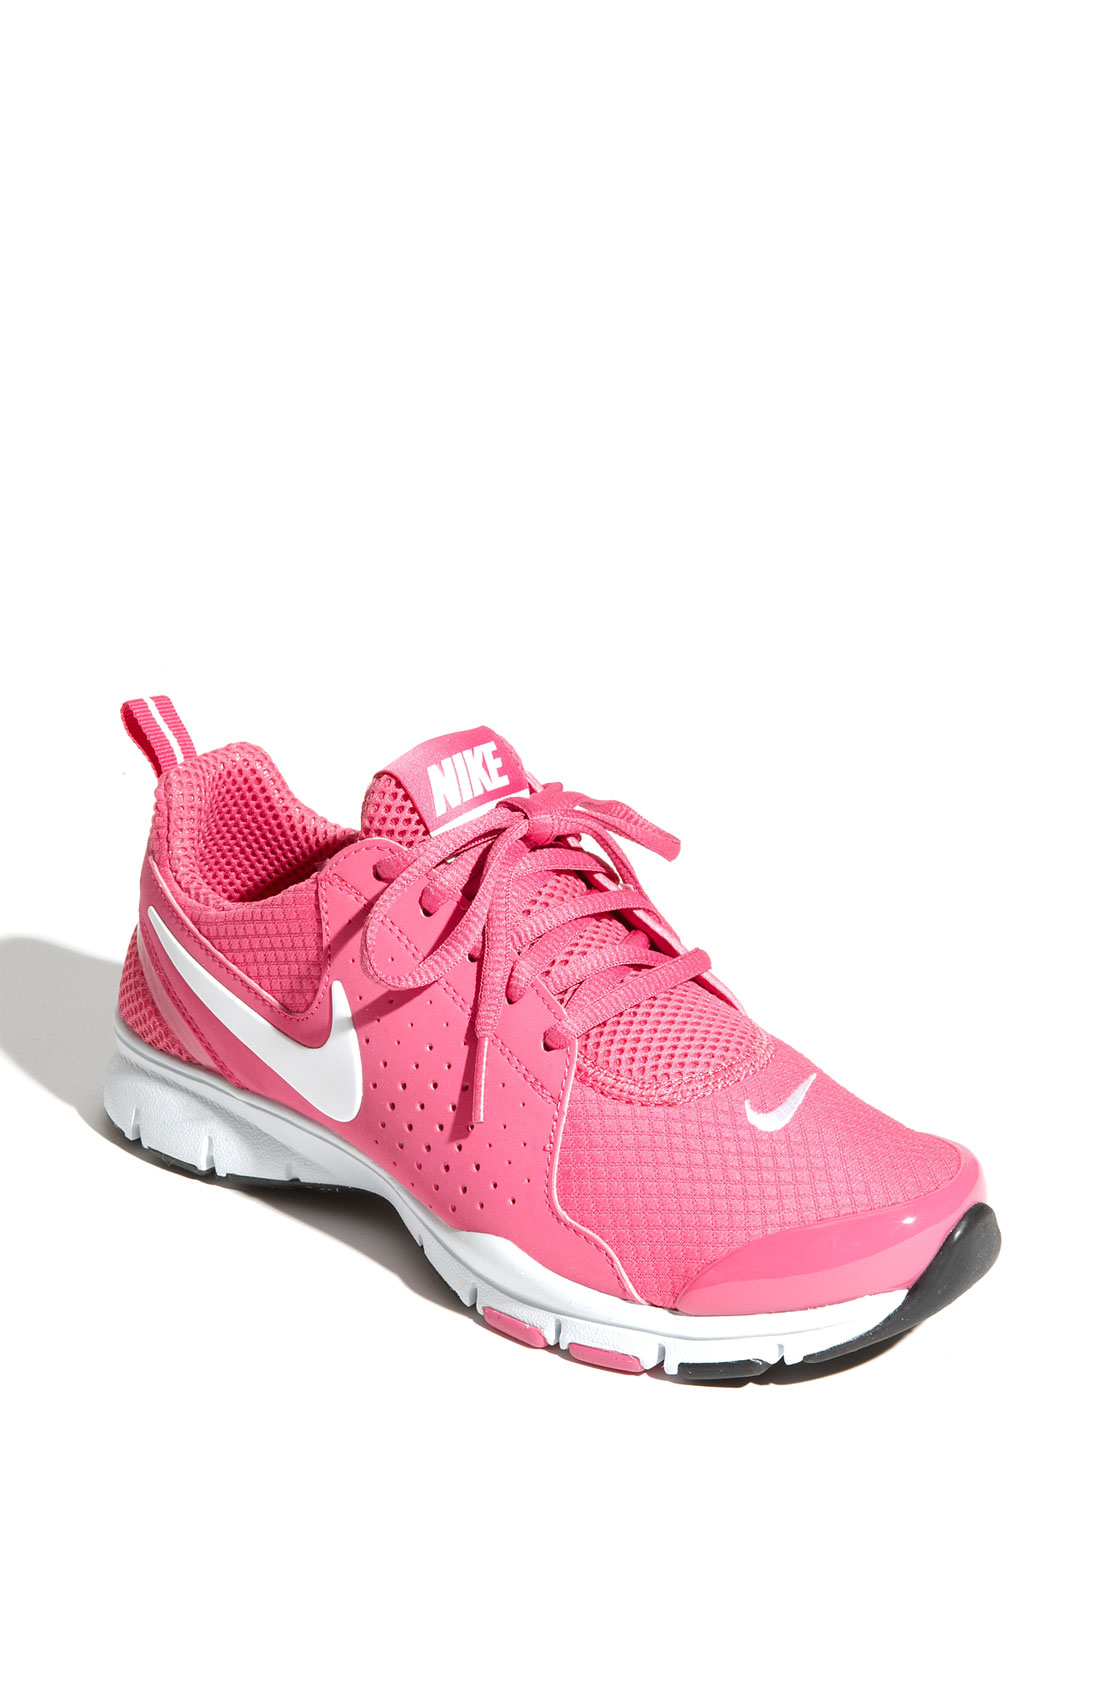 New Nike Workout Shoe